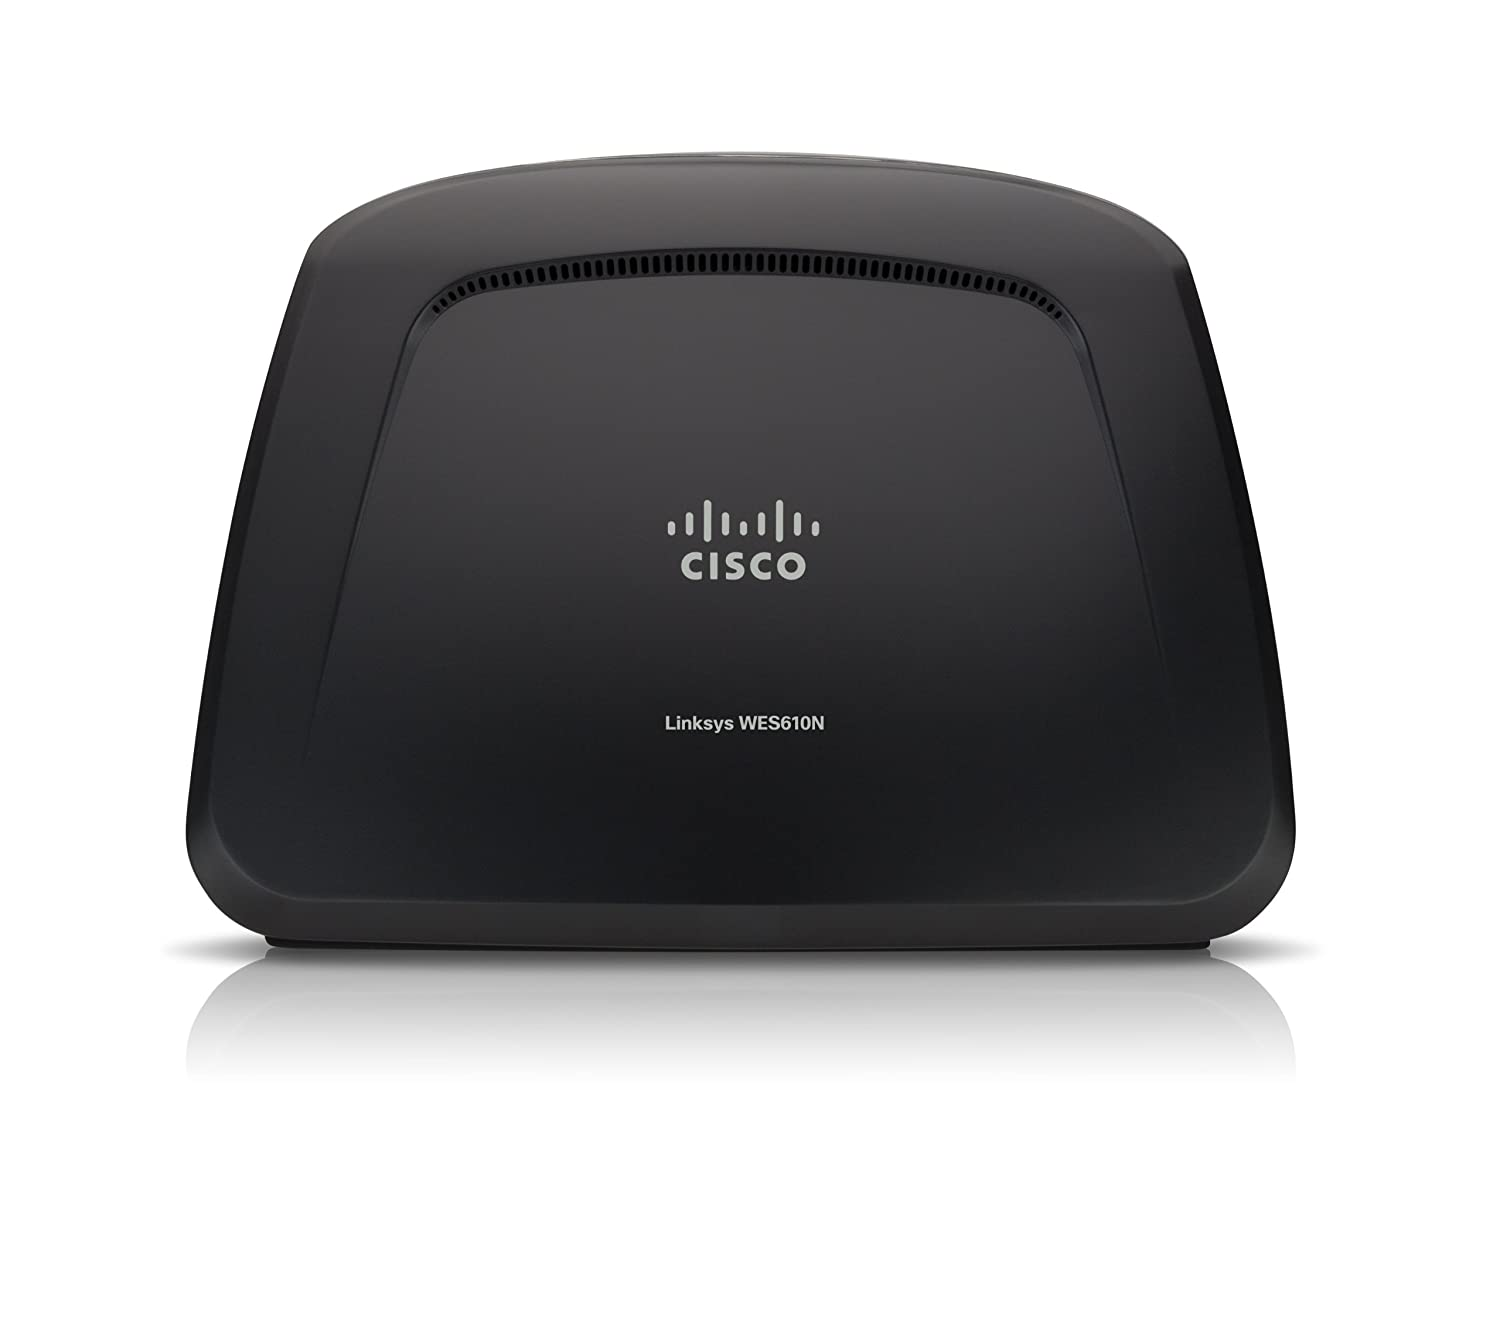 LINKSYS WES610N V2.0 SWITCH WINDOWS VISTA DRIVER DOWNLOAD